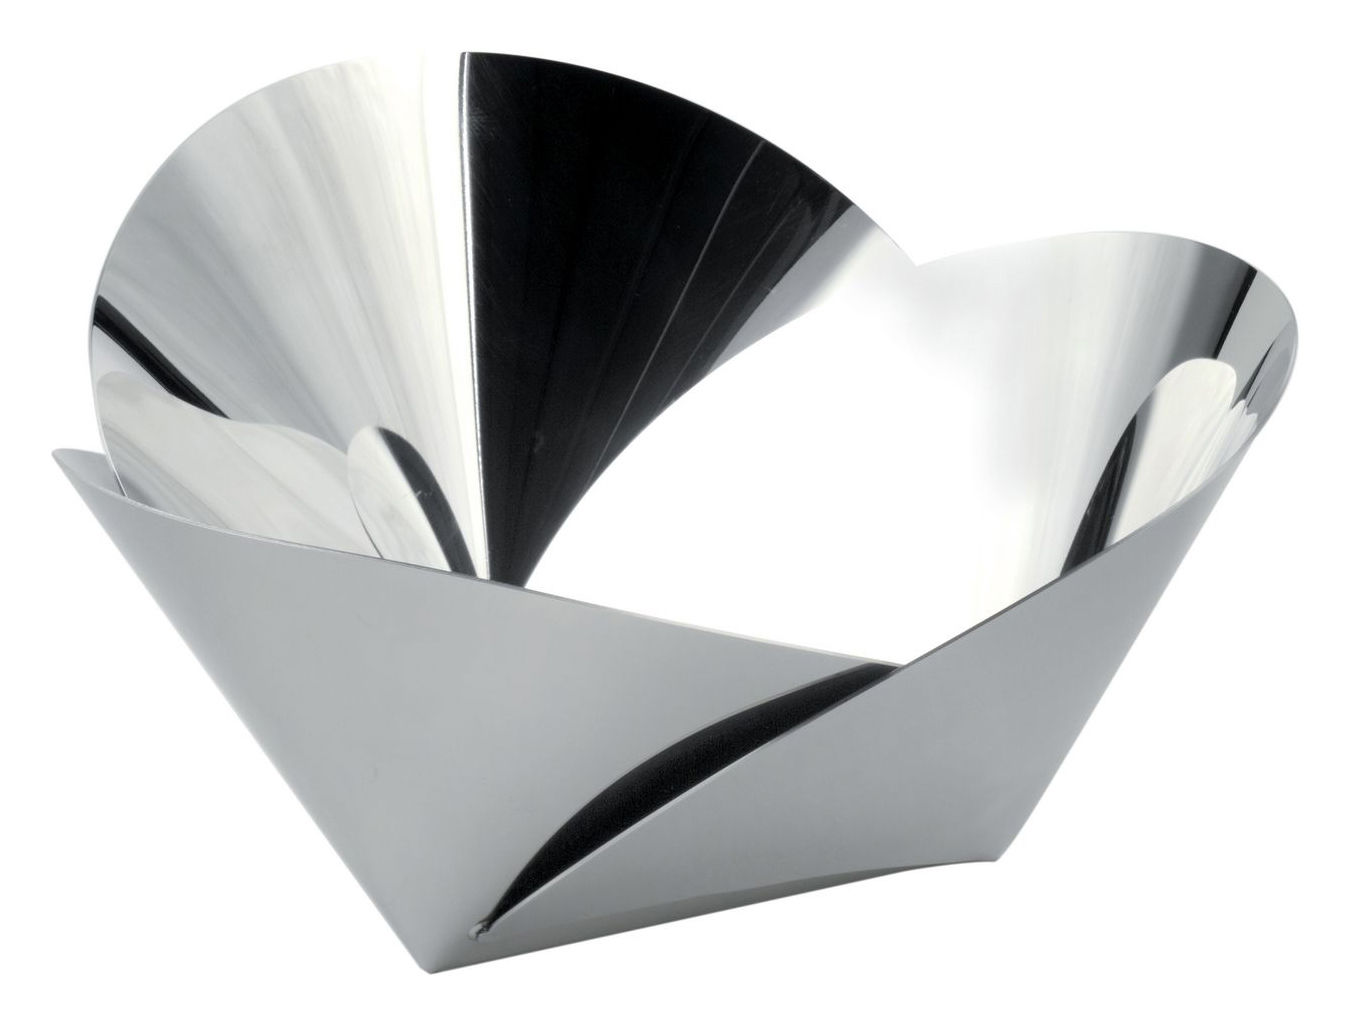 Tableware - Fruit Bowls & Centrepieces - Harmonic Basket by Alessi - Mirror polished - Stainless steel